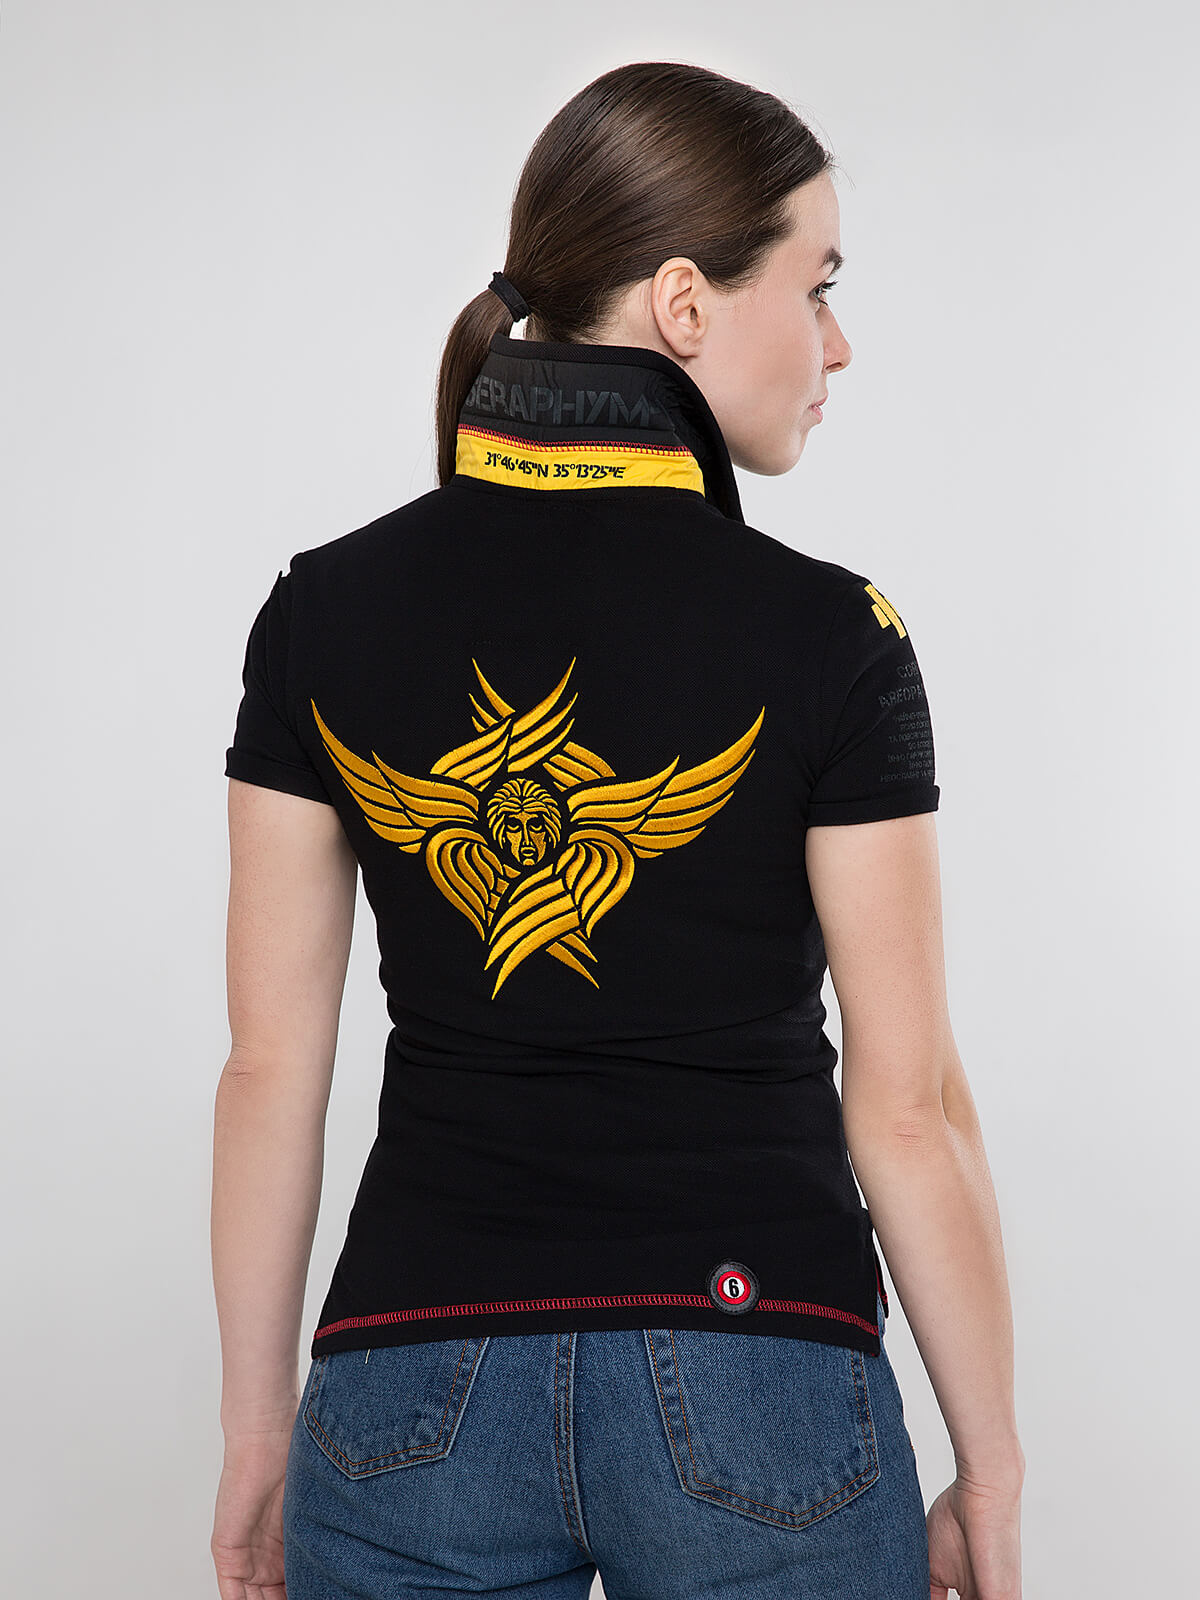 Women's Polo Shirt Seraphim. Color black.  Technique of prints applied: embroidery, silkscreen printing.